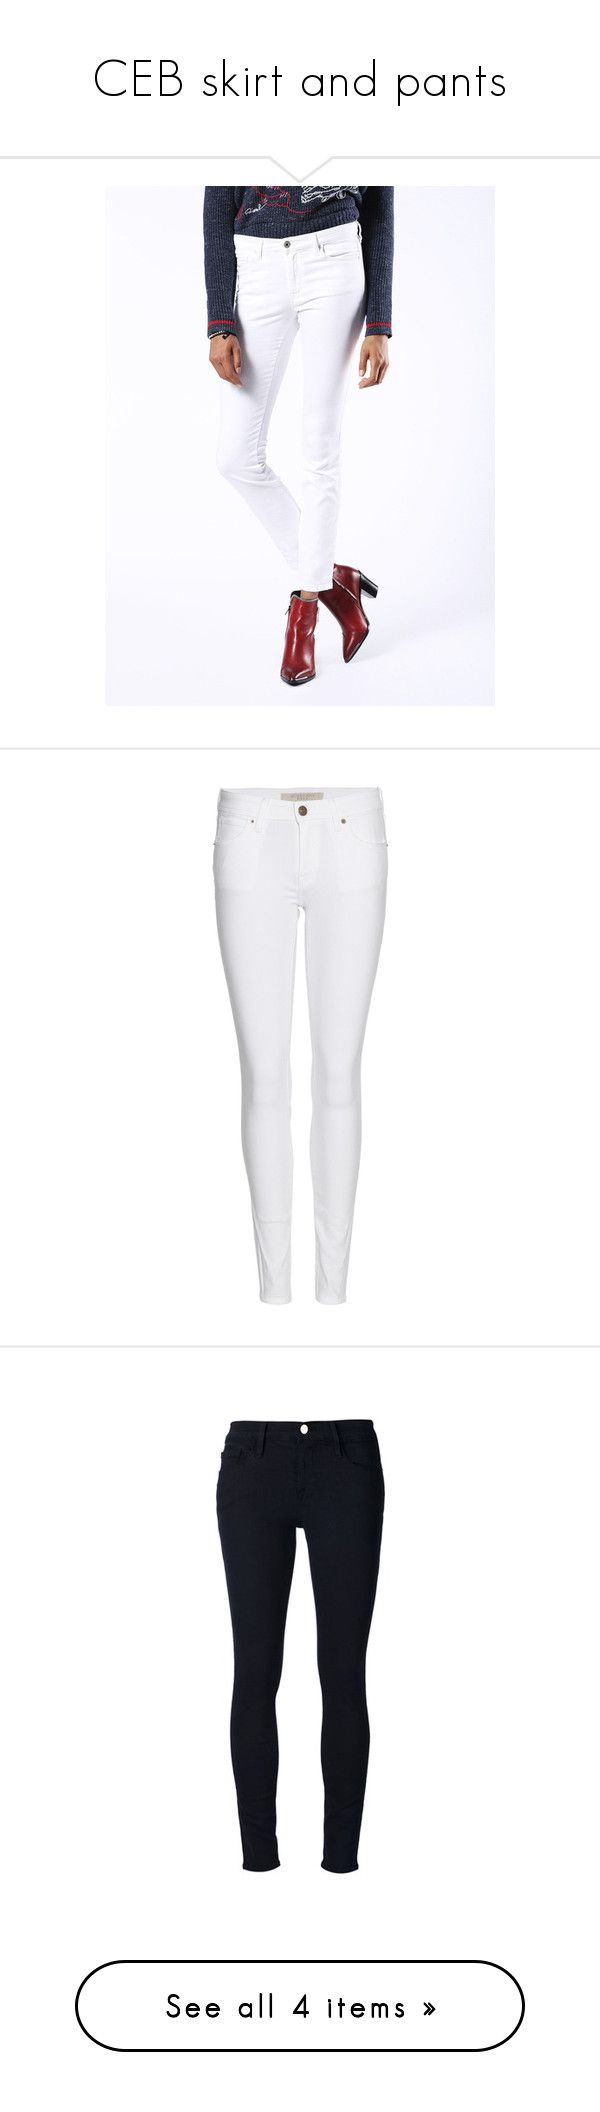 """CEB skirt and pants"" by mil0000000000000 ❤ liked on Polyvore featuring jeans, denim, super skinny, white jeans, women, skinny jeans, diesel jeans, skinny leg jeans, super skinny jeans and white skinny jeans"